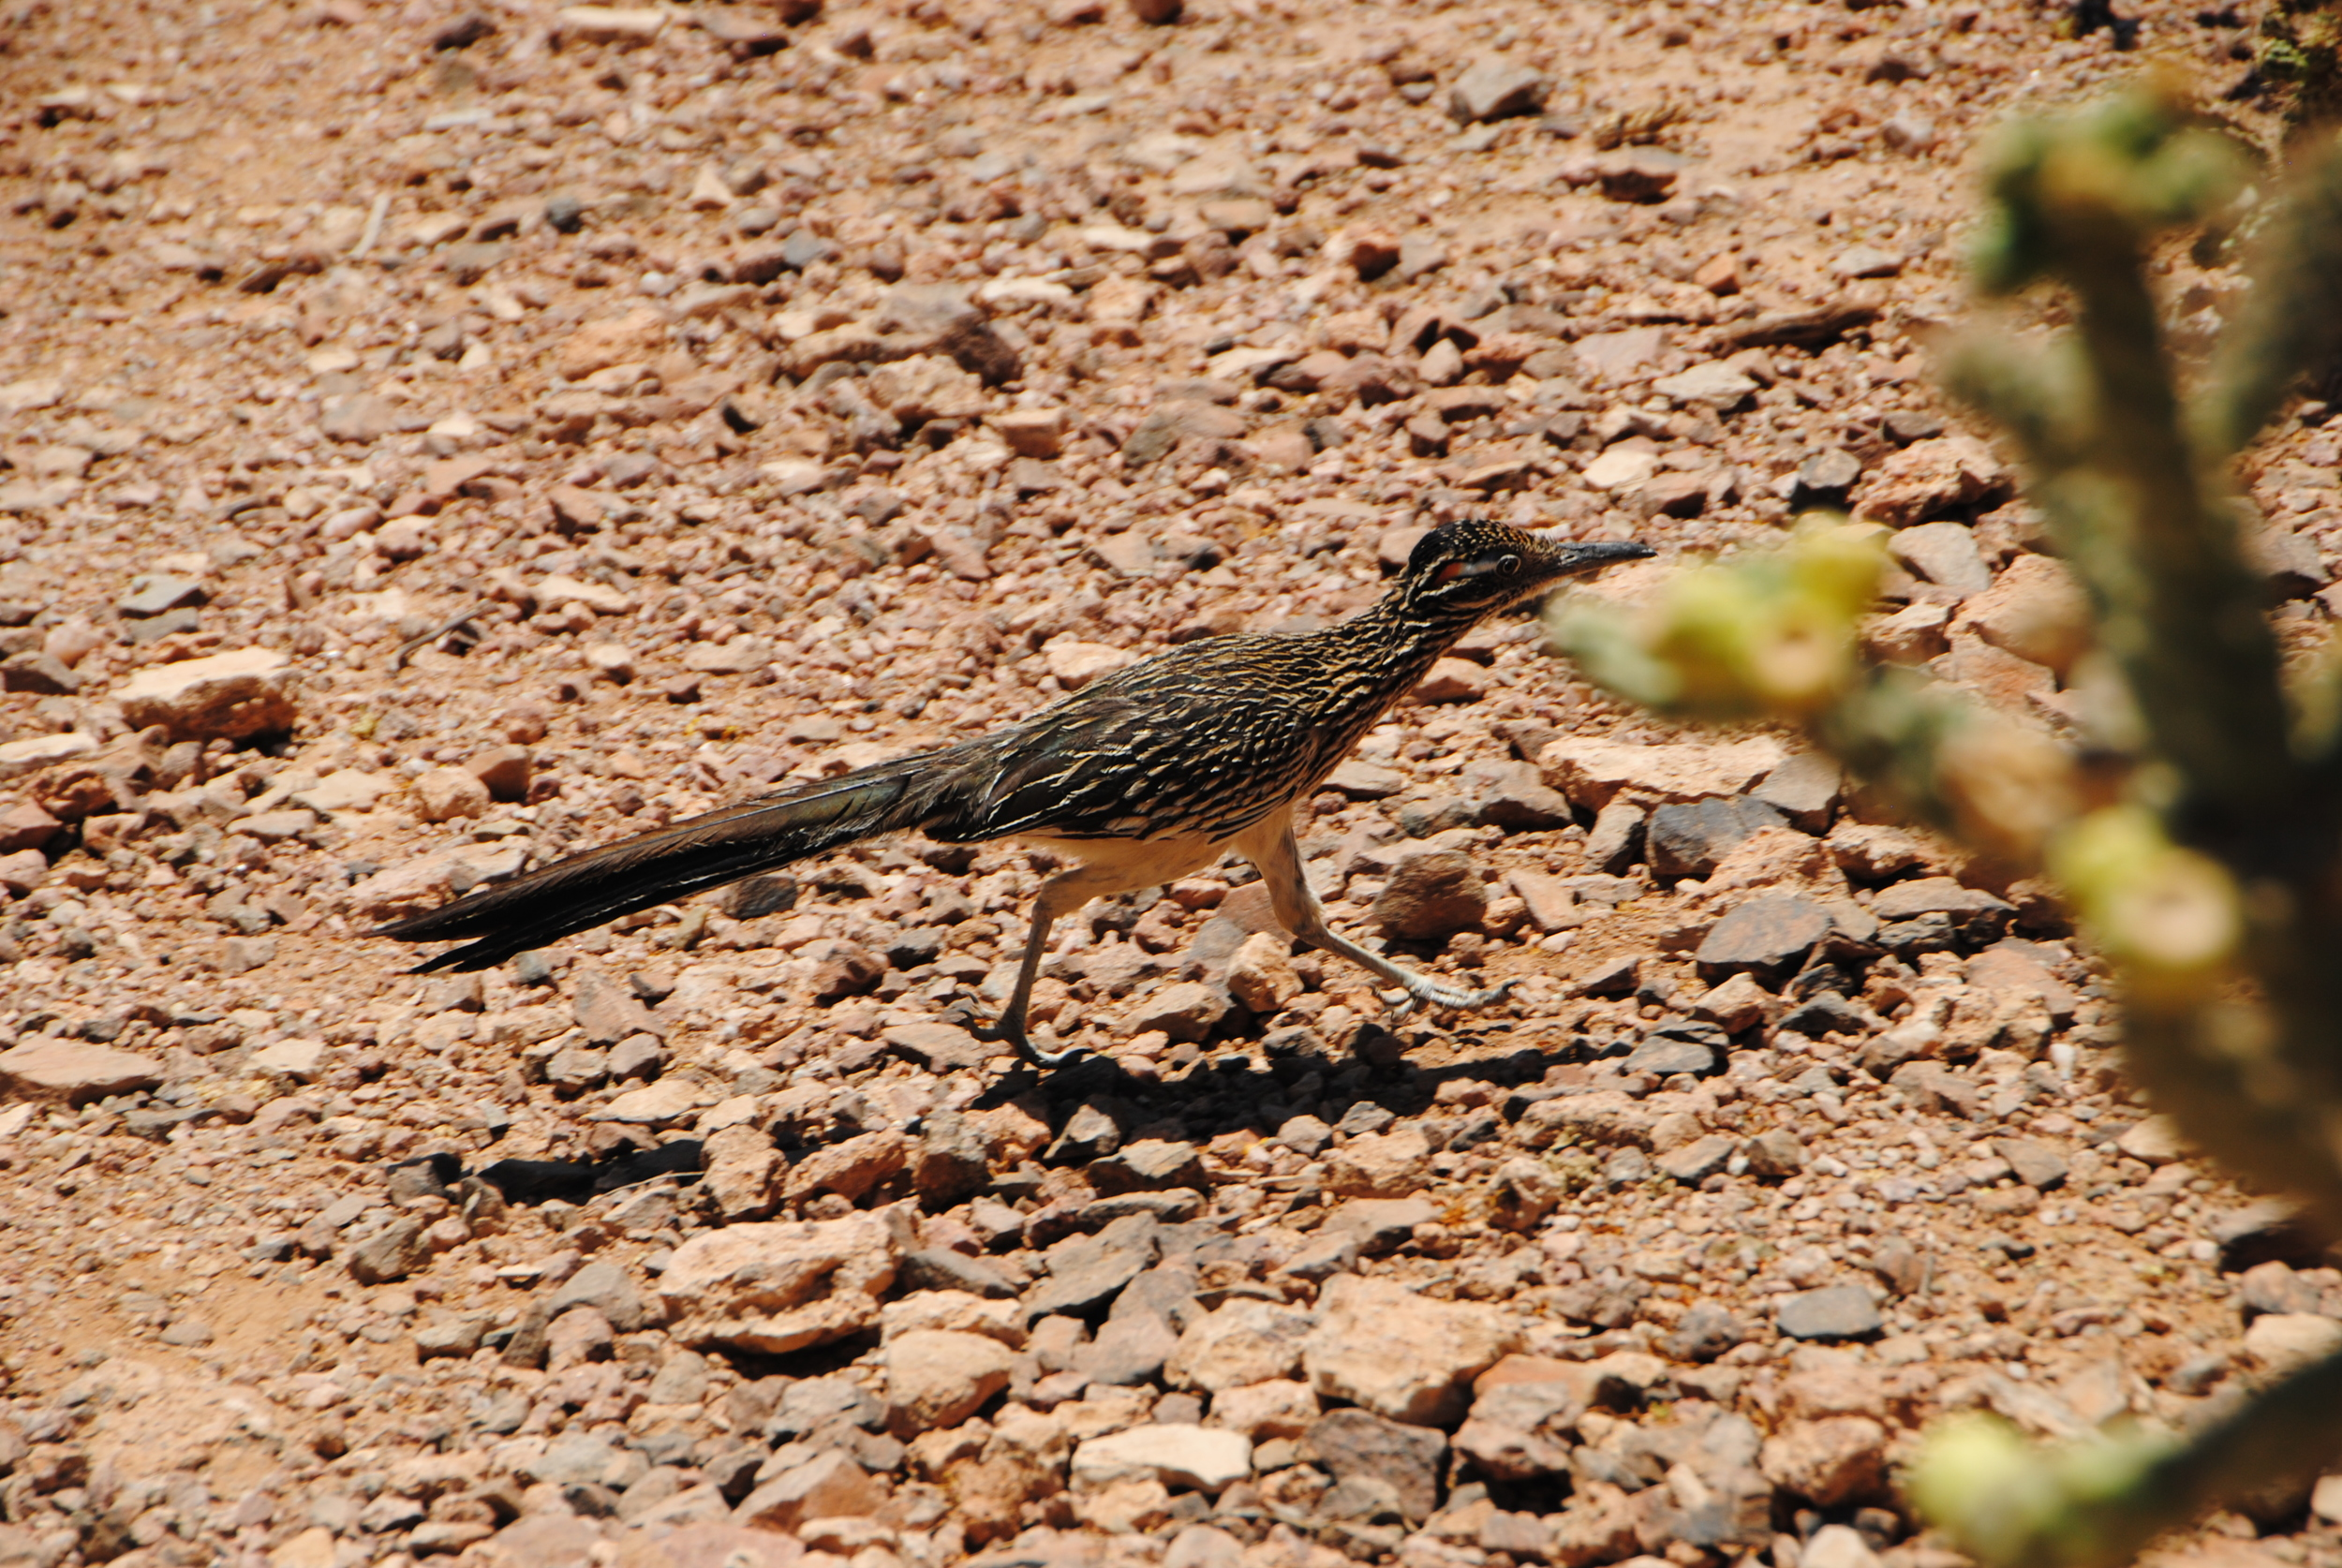 Road runner in action - Wile E. Coyote not in pursuit